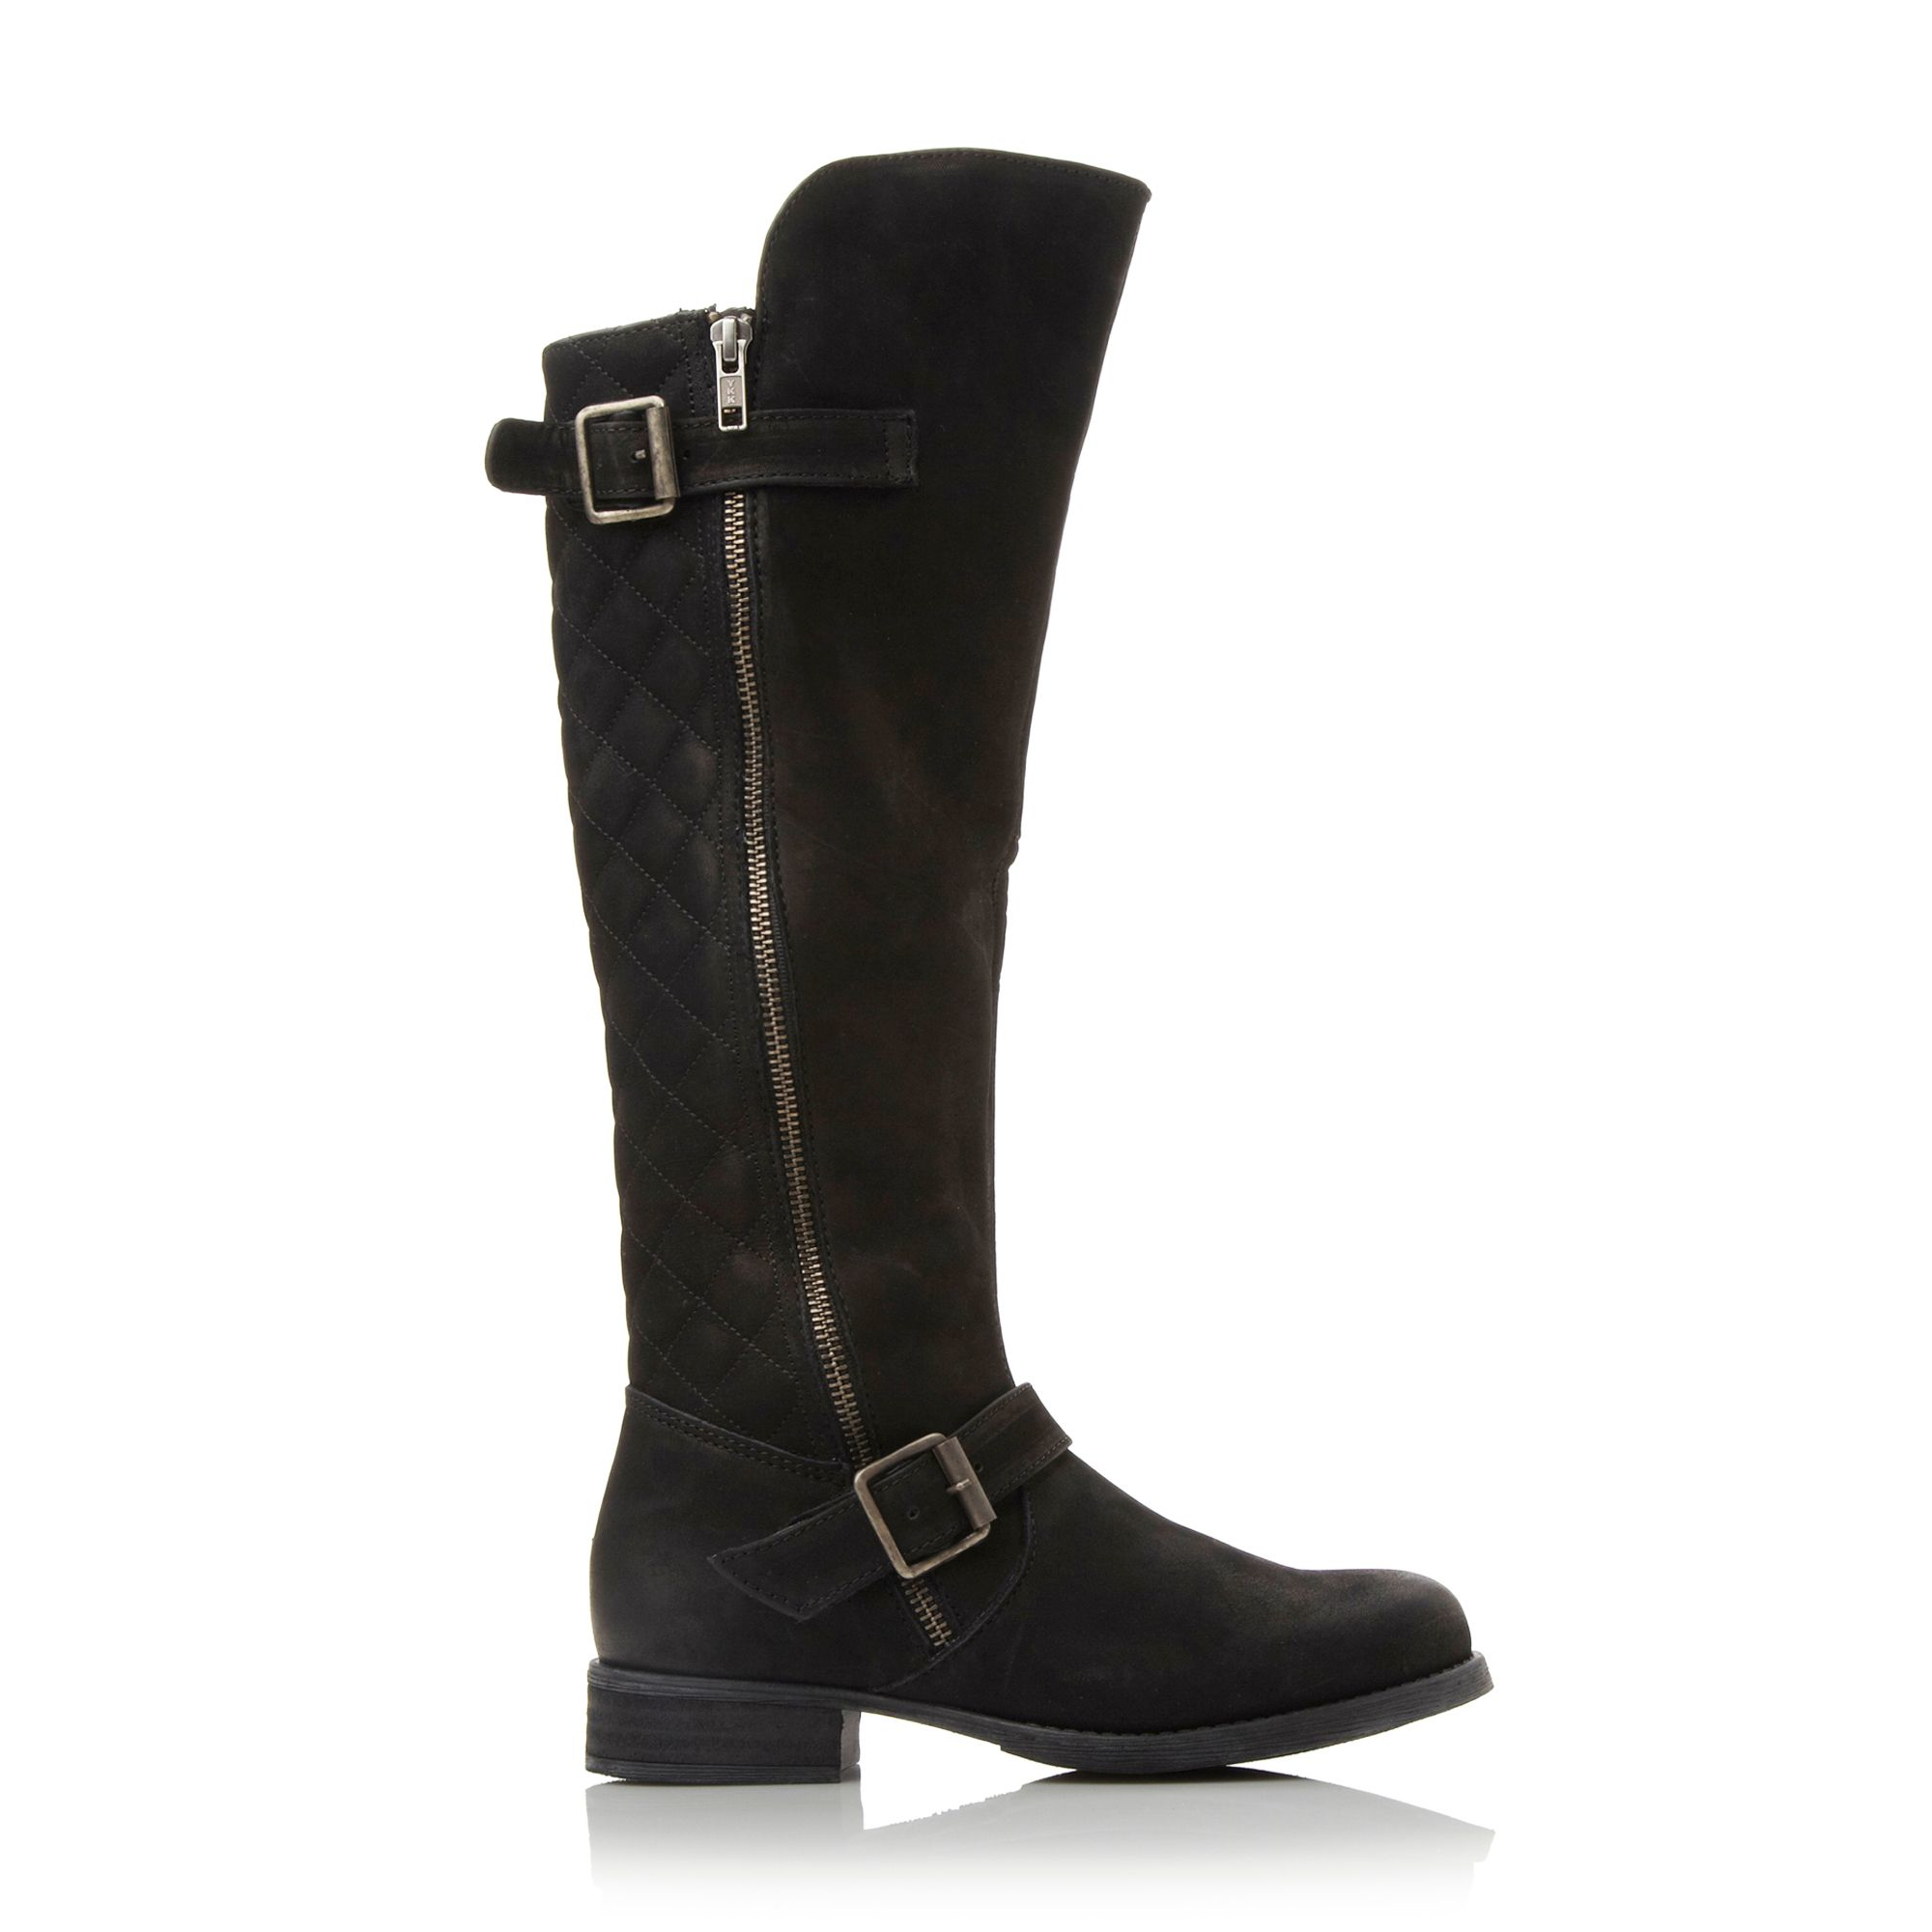 Steve madden Northrn Quilted Back Buckle Boots in Black | Lyst : quilted back boots - Adamdwight.com